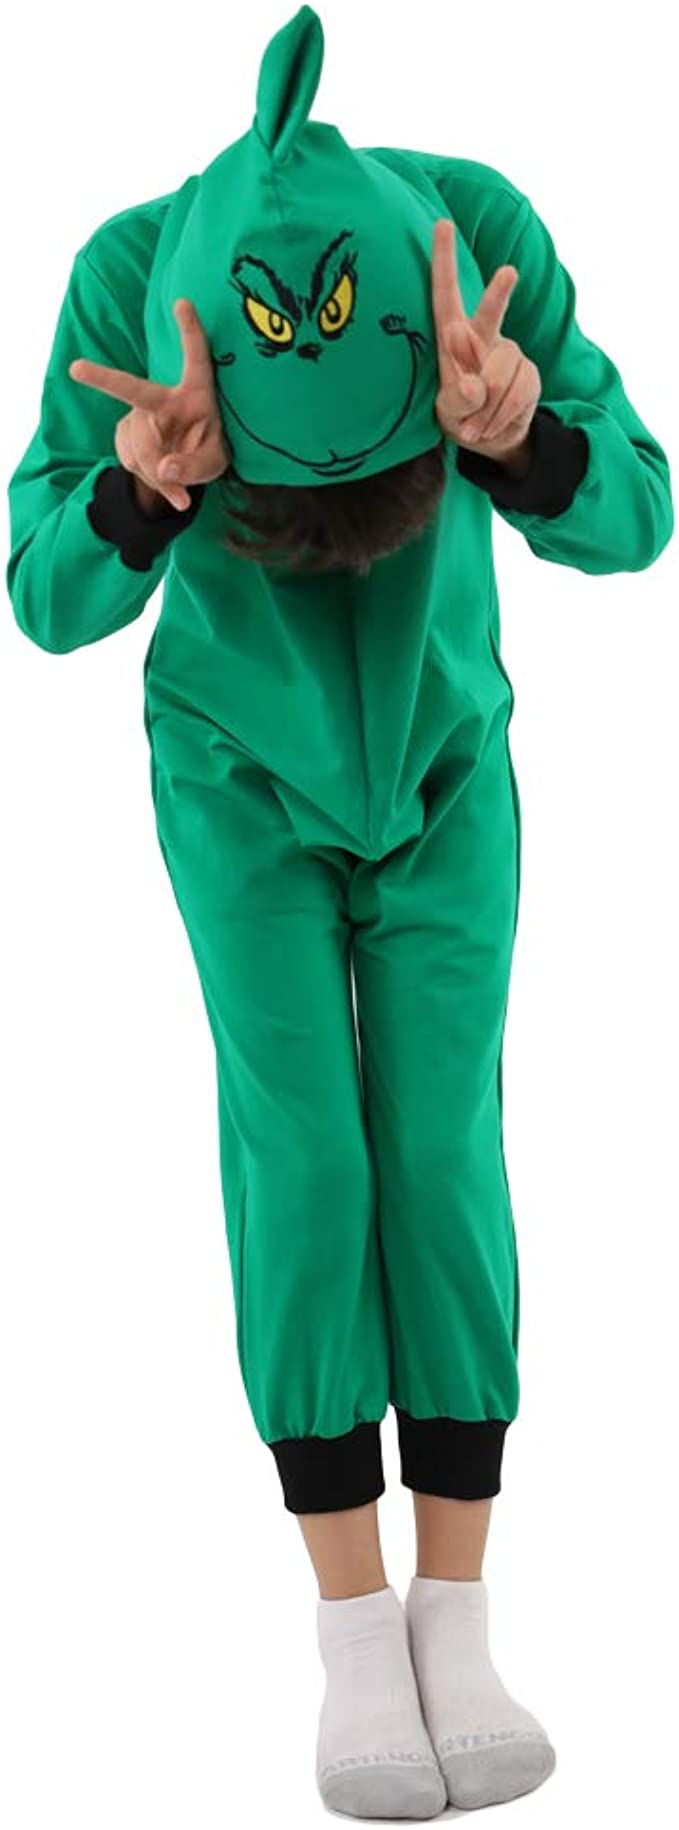 Da Mai Child Girls Boys The Grinch Jumpsuits Green Hooded Pajamas Costume Festival Play Costume